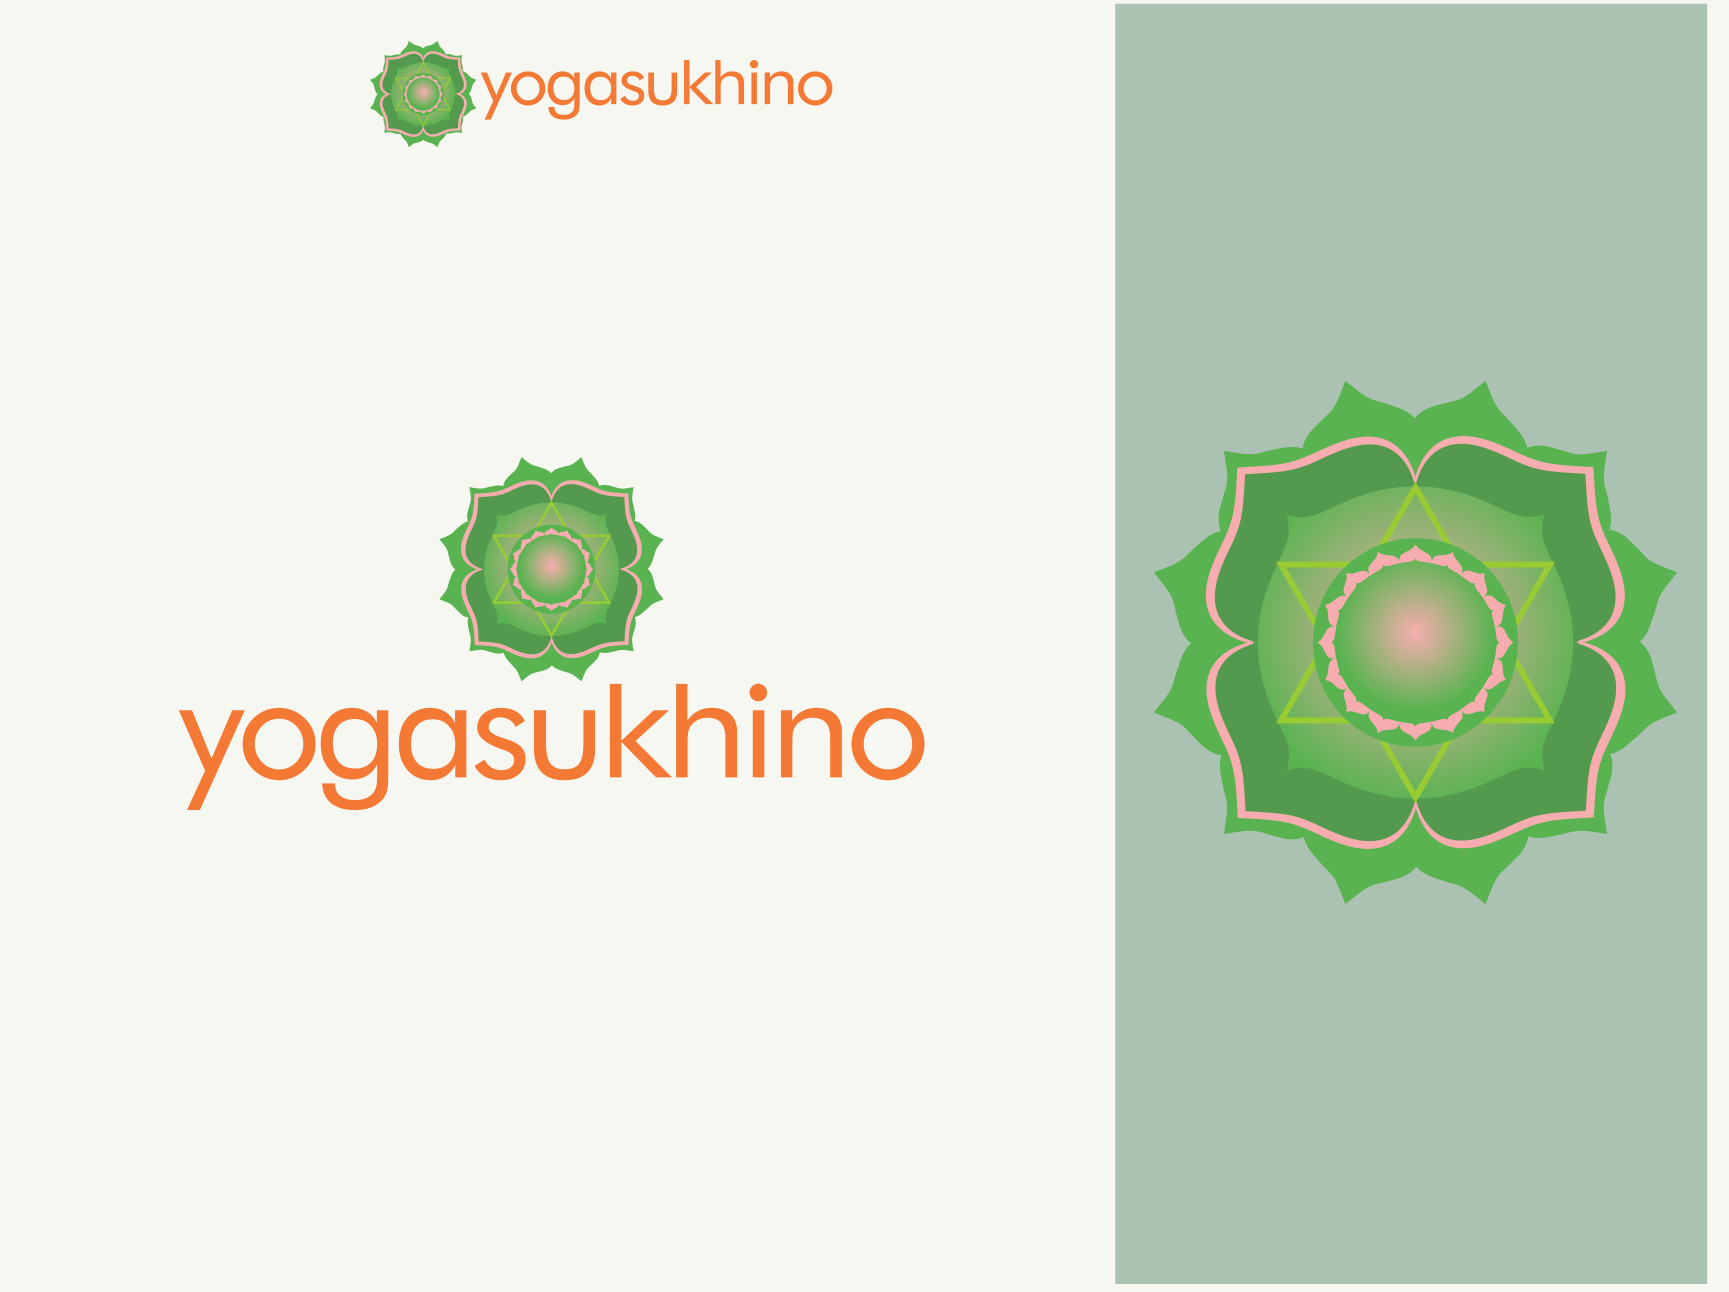 create a joyful logo to inspire future yogis